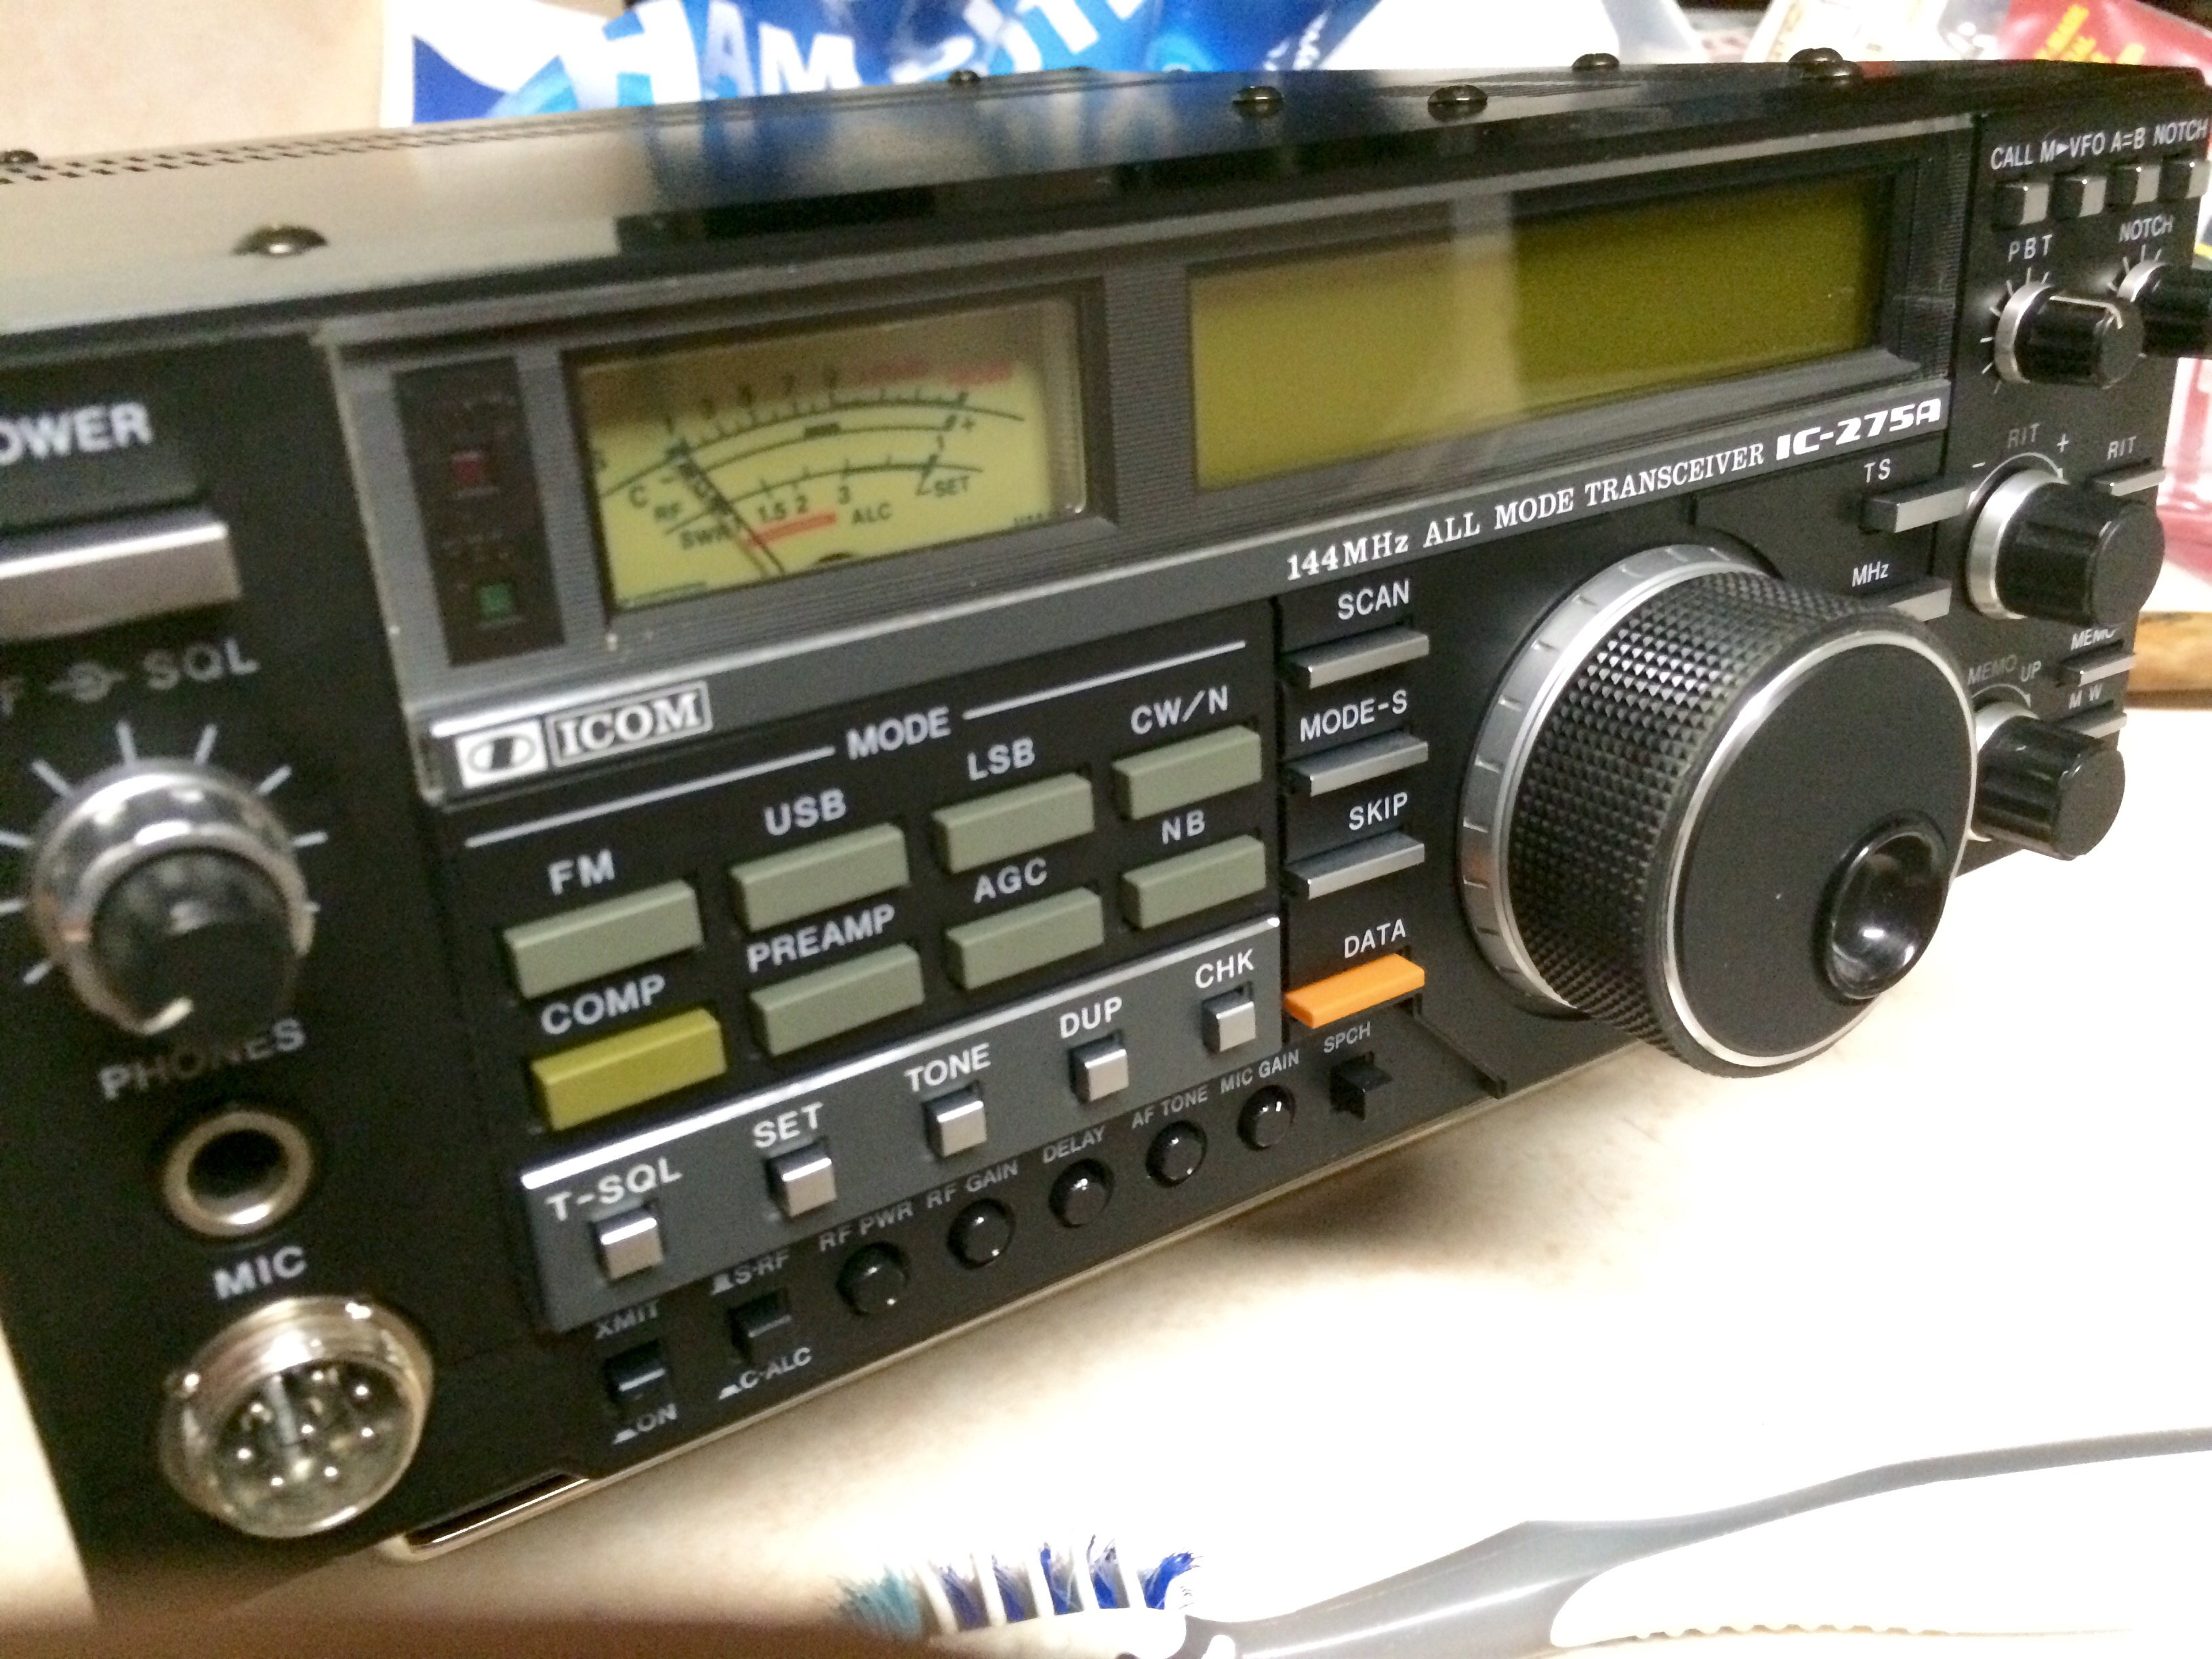 iCom IC-275A 2M All-mode - N6PET - My Ham Radio Journal